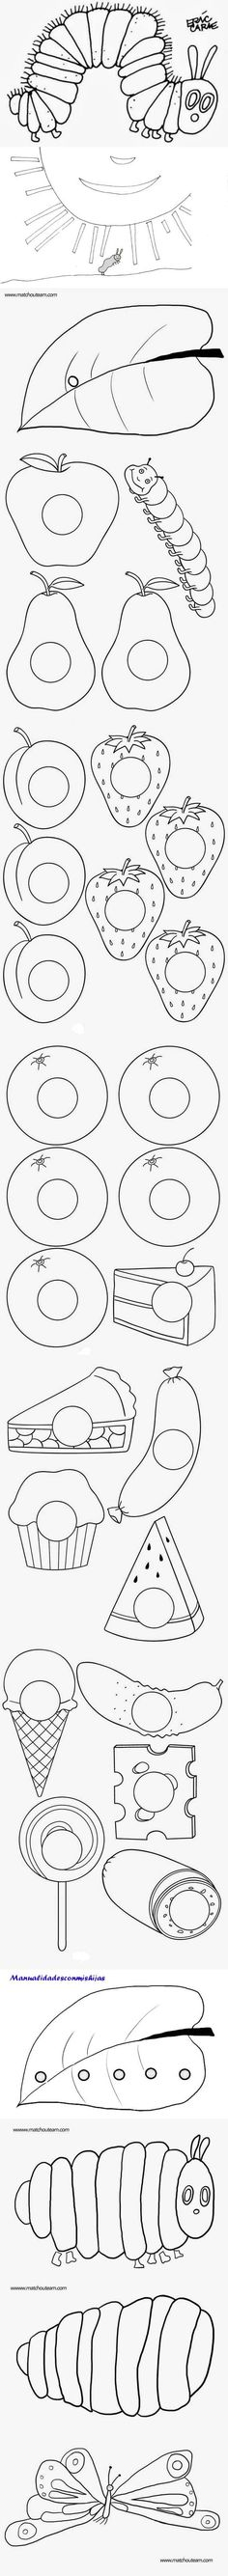 Hungry Caterpillar Coloring Page . Hungry Caterpillar Coloring Page . 8 Best Of Very Hungry Caterpillar Sequencing Eric Carle, Hungry Caterpillar Activities, Hungry Caterpillar Party, Educational Activities For Kids, Book Activities, Butterfly Crafts, Conte, Creative Curriculum, Book Crafts